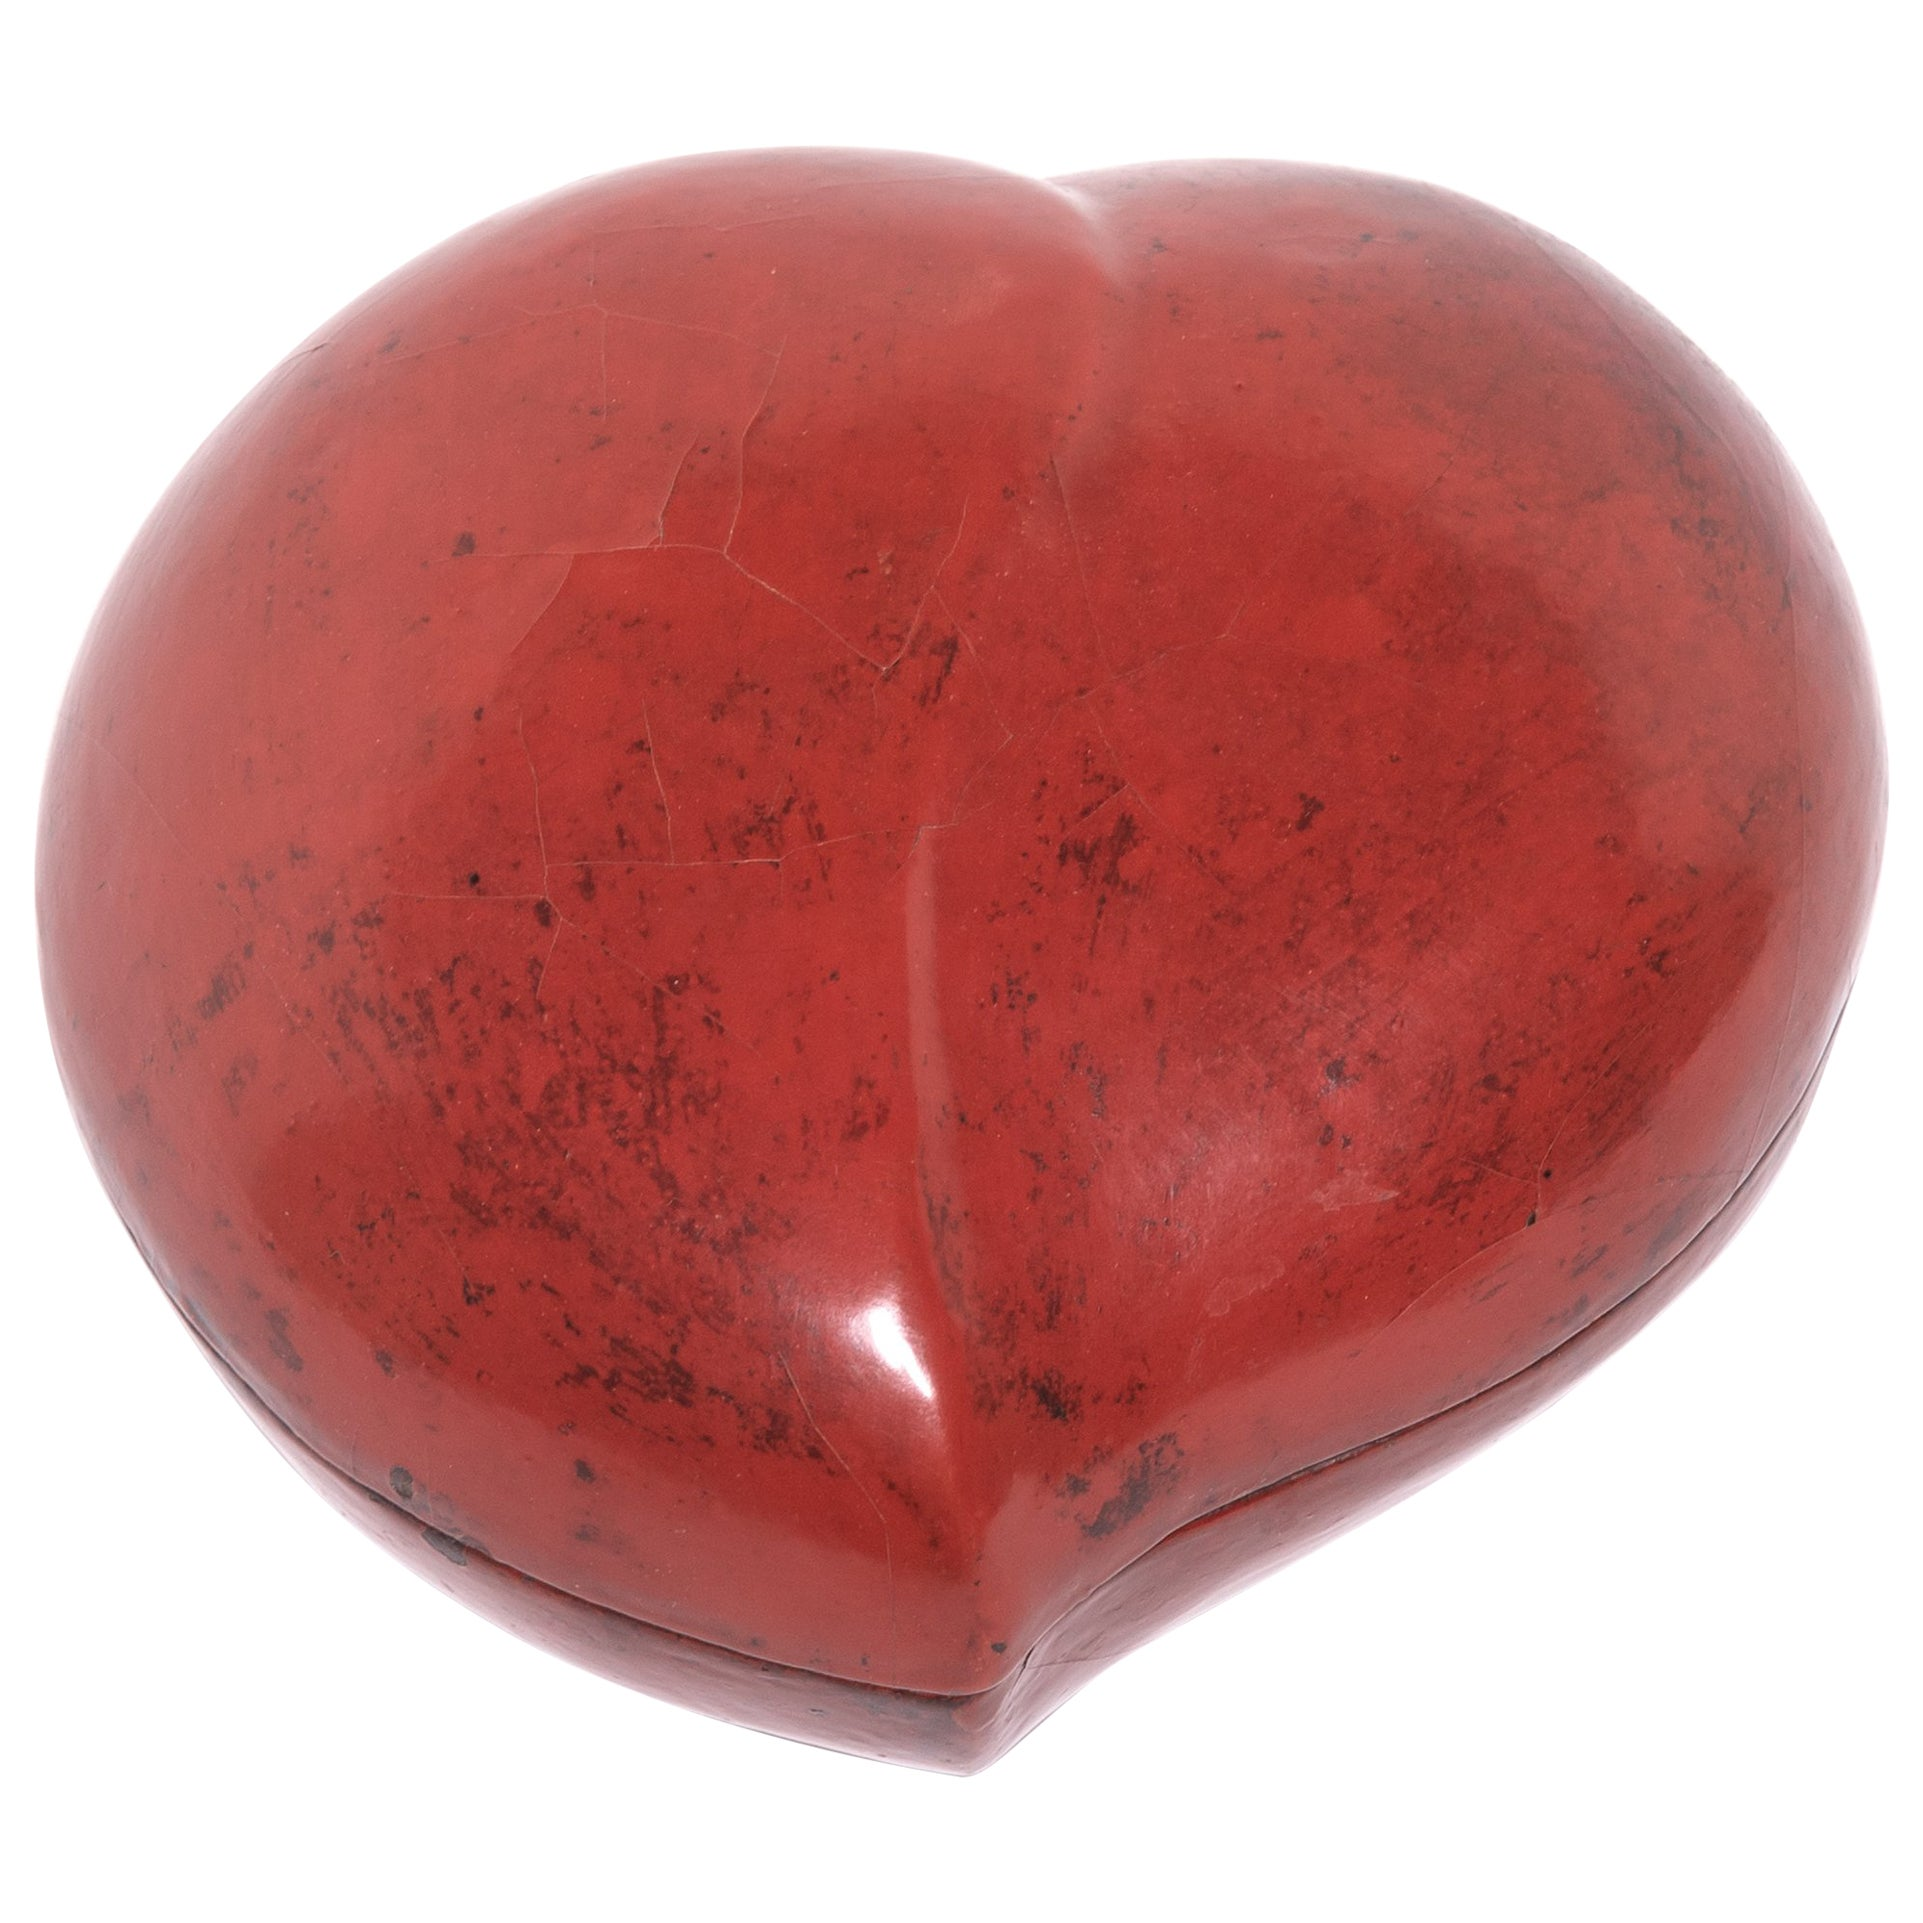 Chinese Red Lacquer Peach Form Presentation Box, c. 1850